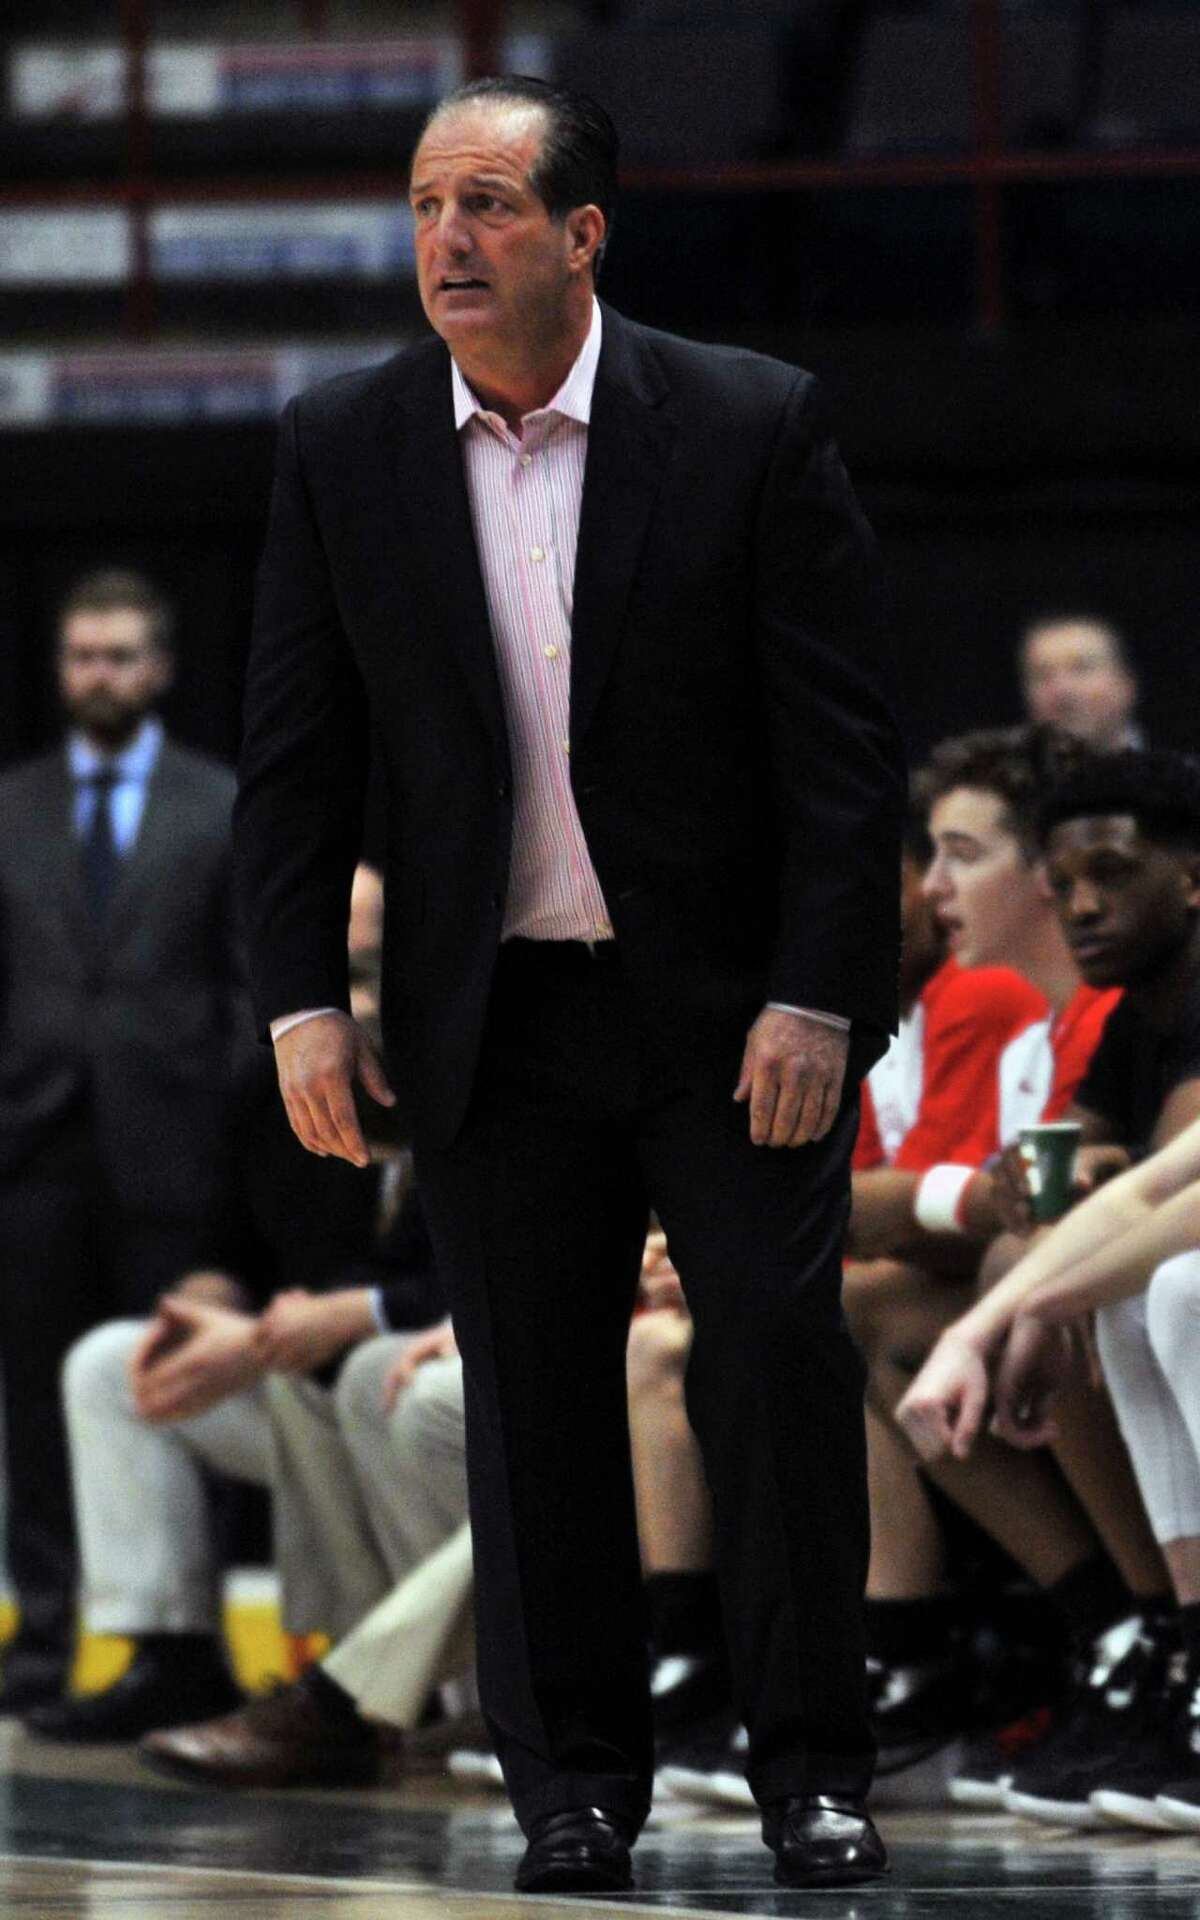 Coach Brian Fruscio of Albany's Academy boys basketball is unhappy with his team's personal foul during the second quarter of the Federation Tournament of Champions Class A basketball game between Albany Academy and Canisius High School. Photo taken on Friday, March 19, 2016, in the Times Union Center, Albany, N.Y. (Brittany Gregory / Special to the Times Union)